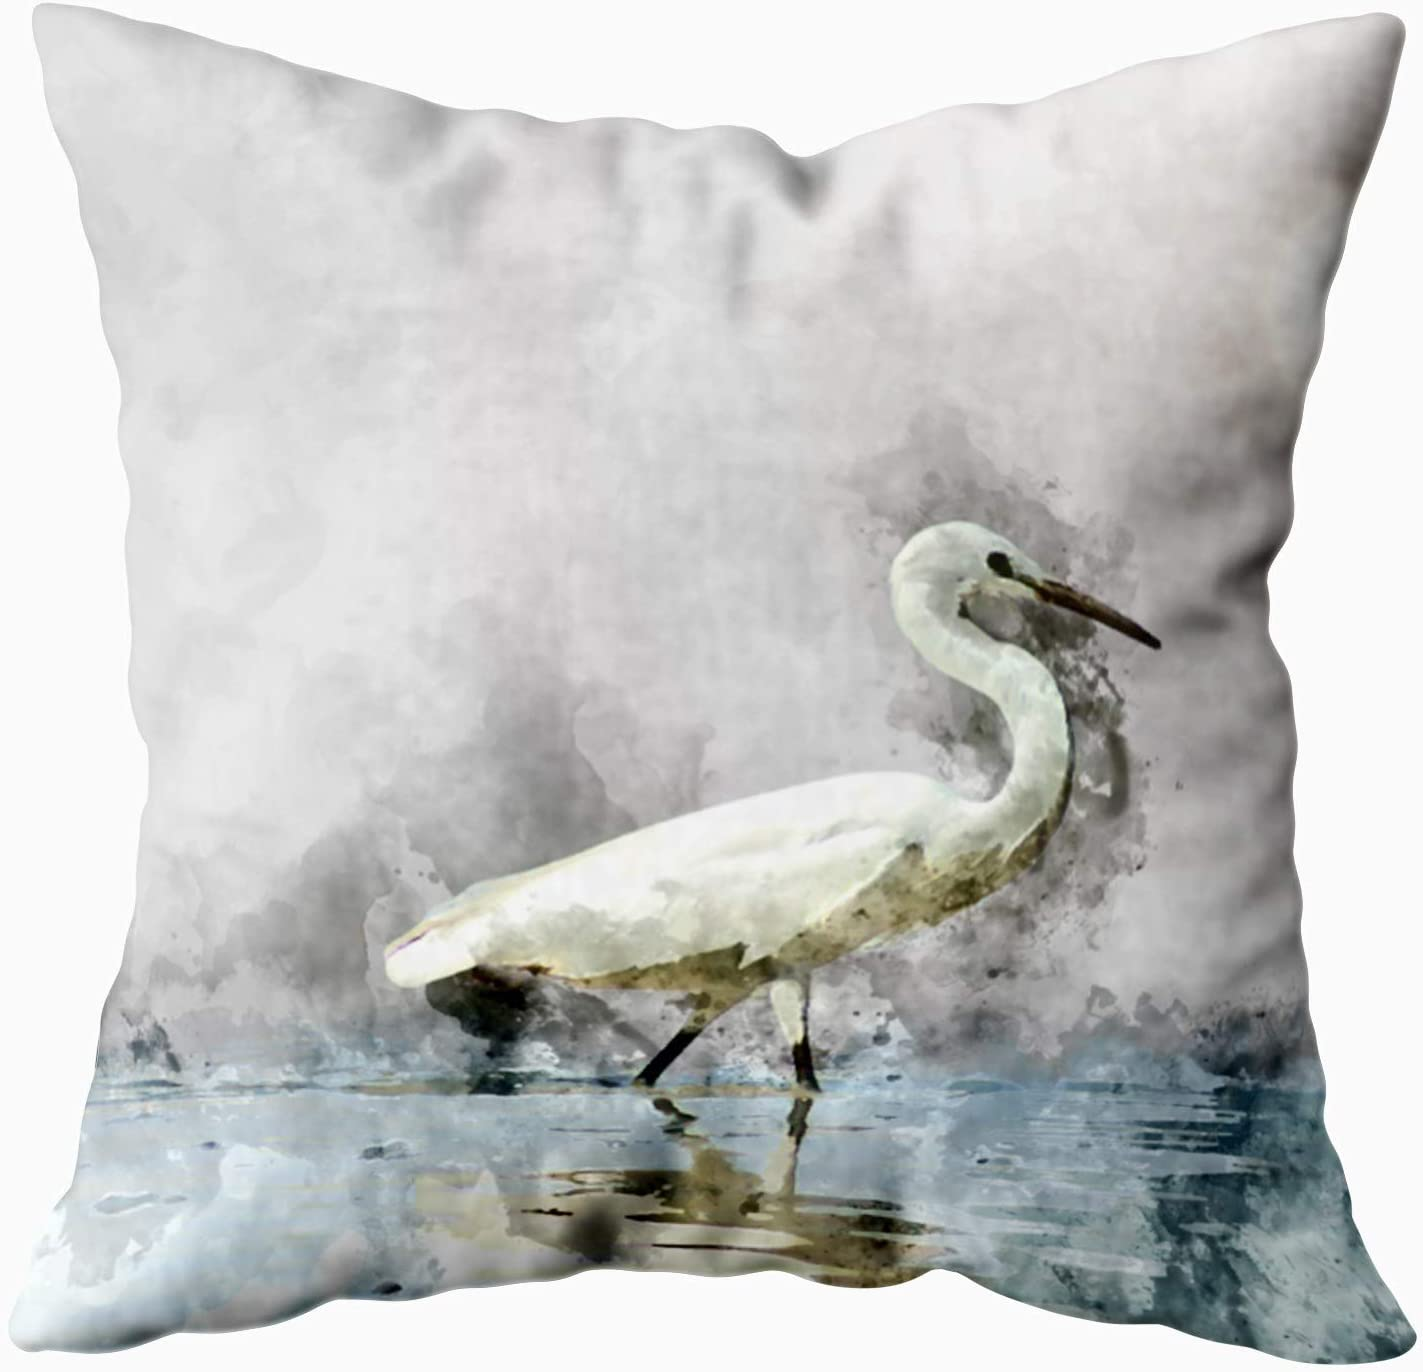 Amazon Com Shorping Decorative Pillow Covers Zippered Pillowcases 20x20inch Throw Pillow Covers Watercolor Image Little Bird Lake For Home Sofa Bedding Home Kitchen